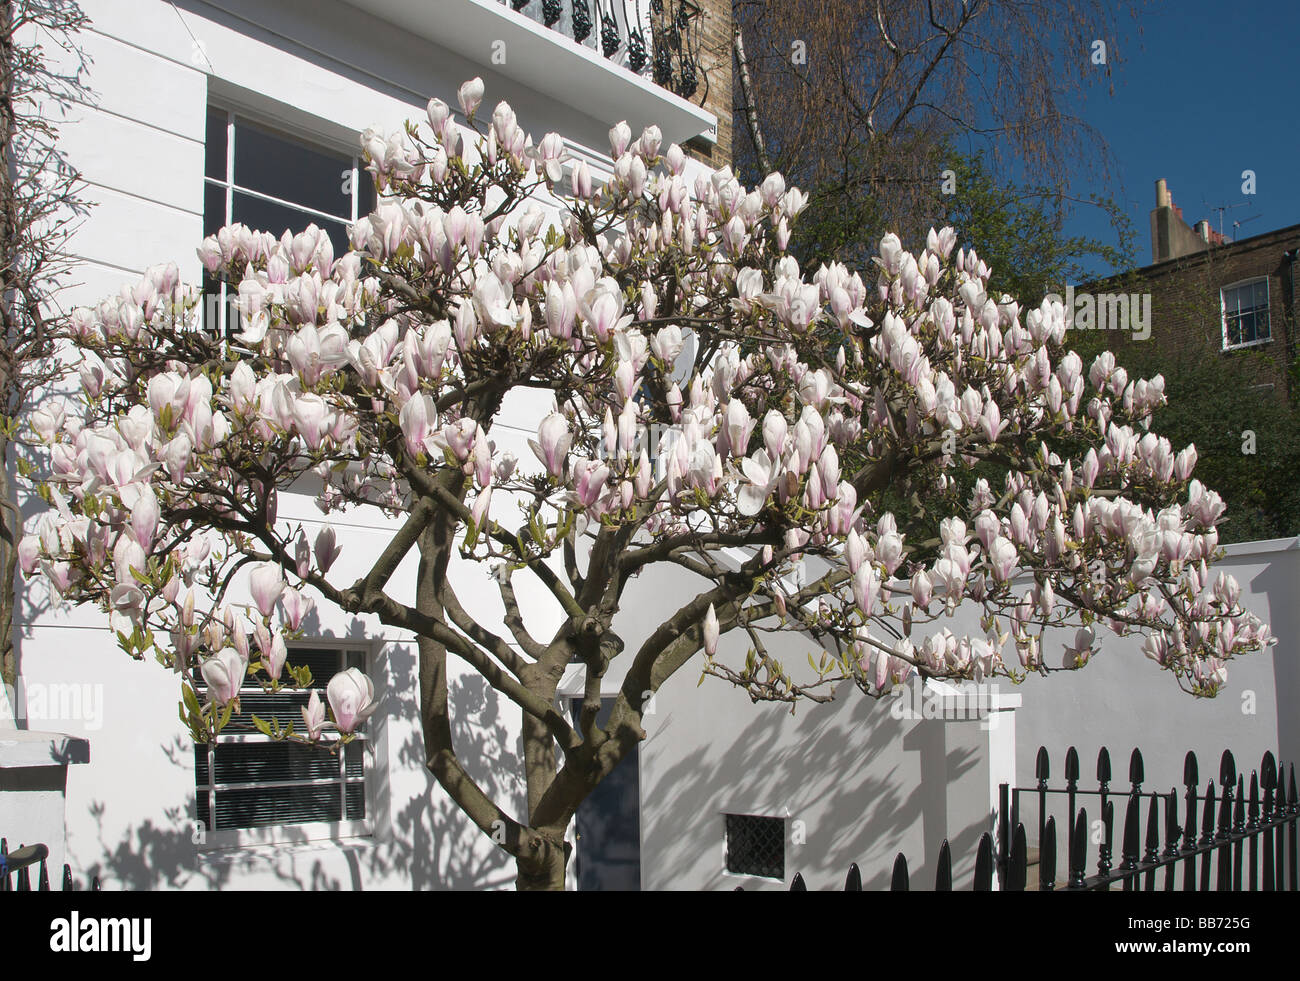 Magnolia tree in blossom in front of terraced victorian house camden magnolia tree in blossom in front of terraced victorian house camden town london nw1 england uk mightylinksfo Images